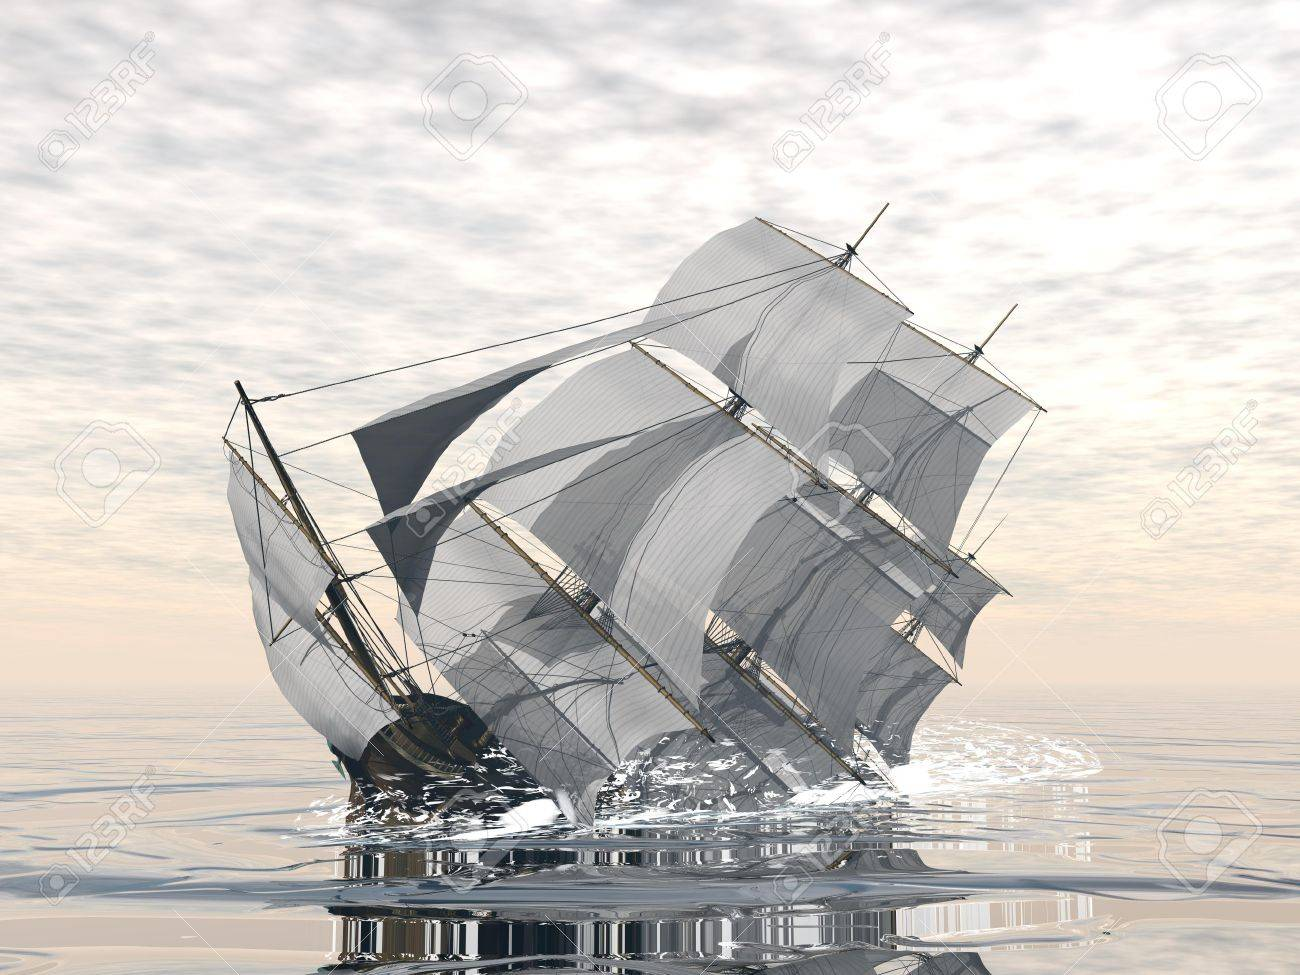 Beautiful Detailed Old Merchant Ship Sinking In The Ocean Stock Photo,  Picture And Royalty Free Image. Image 28263261.